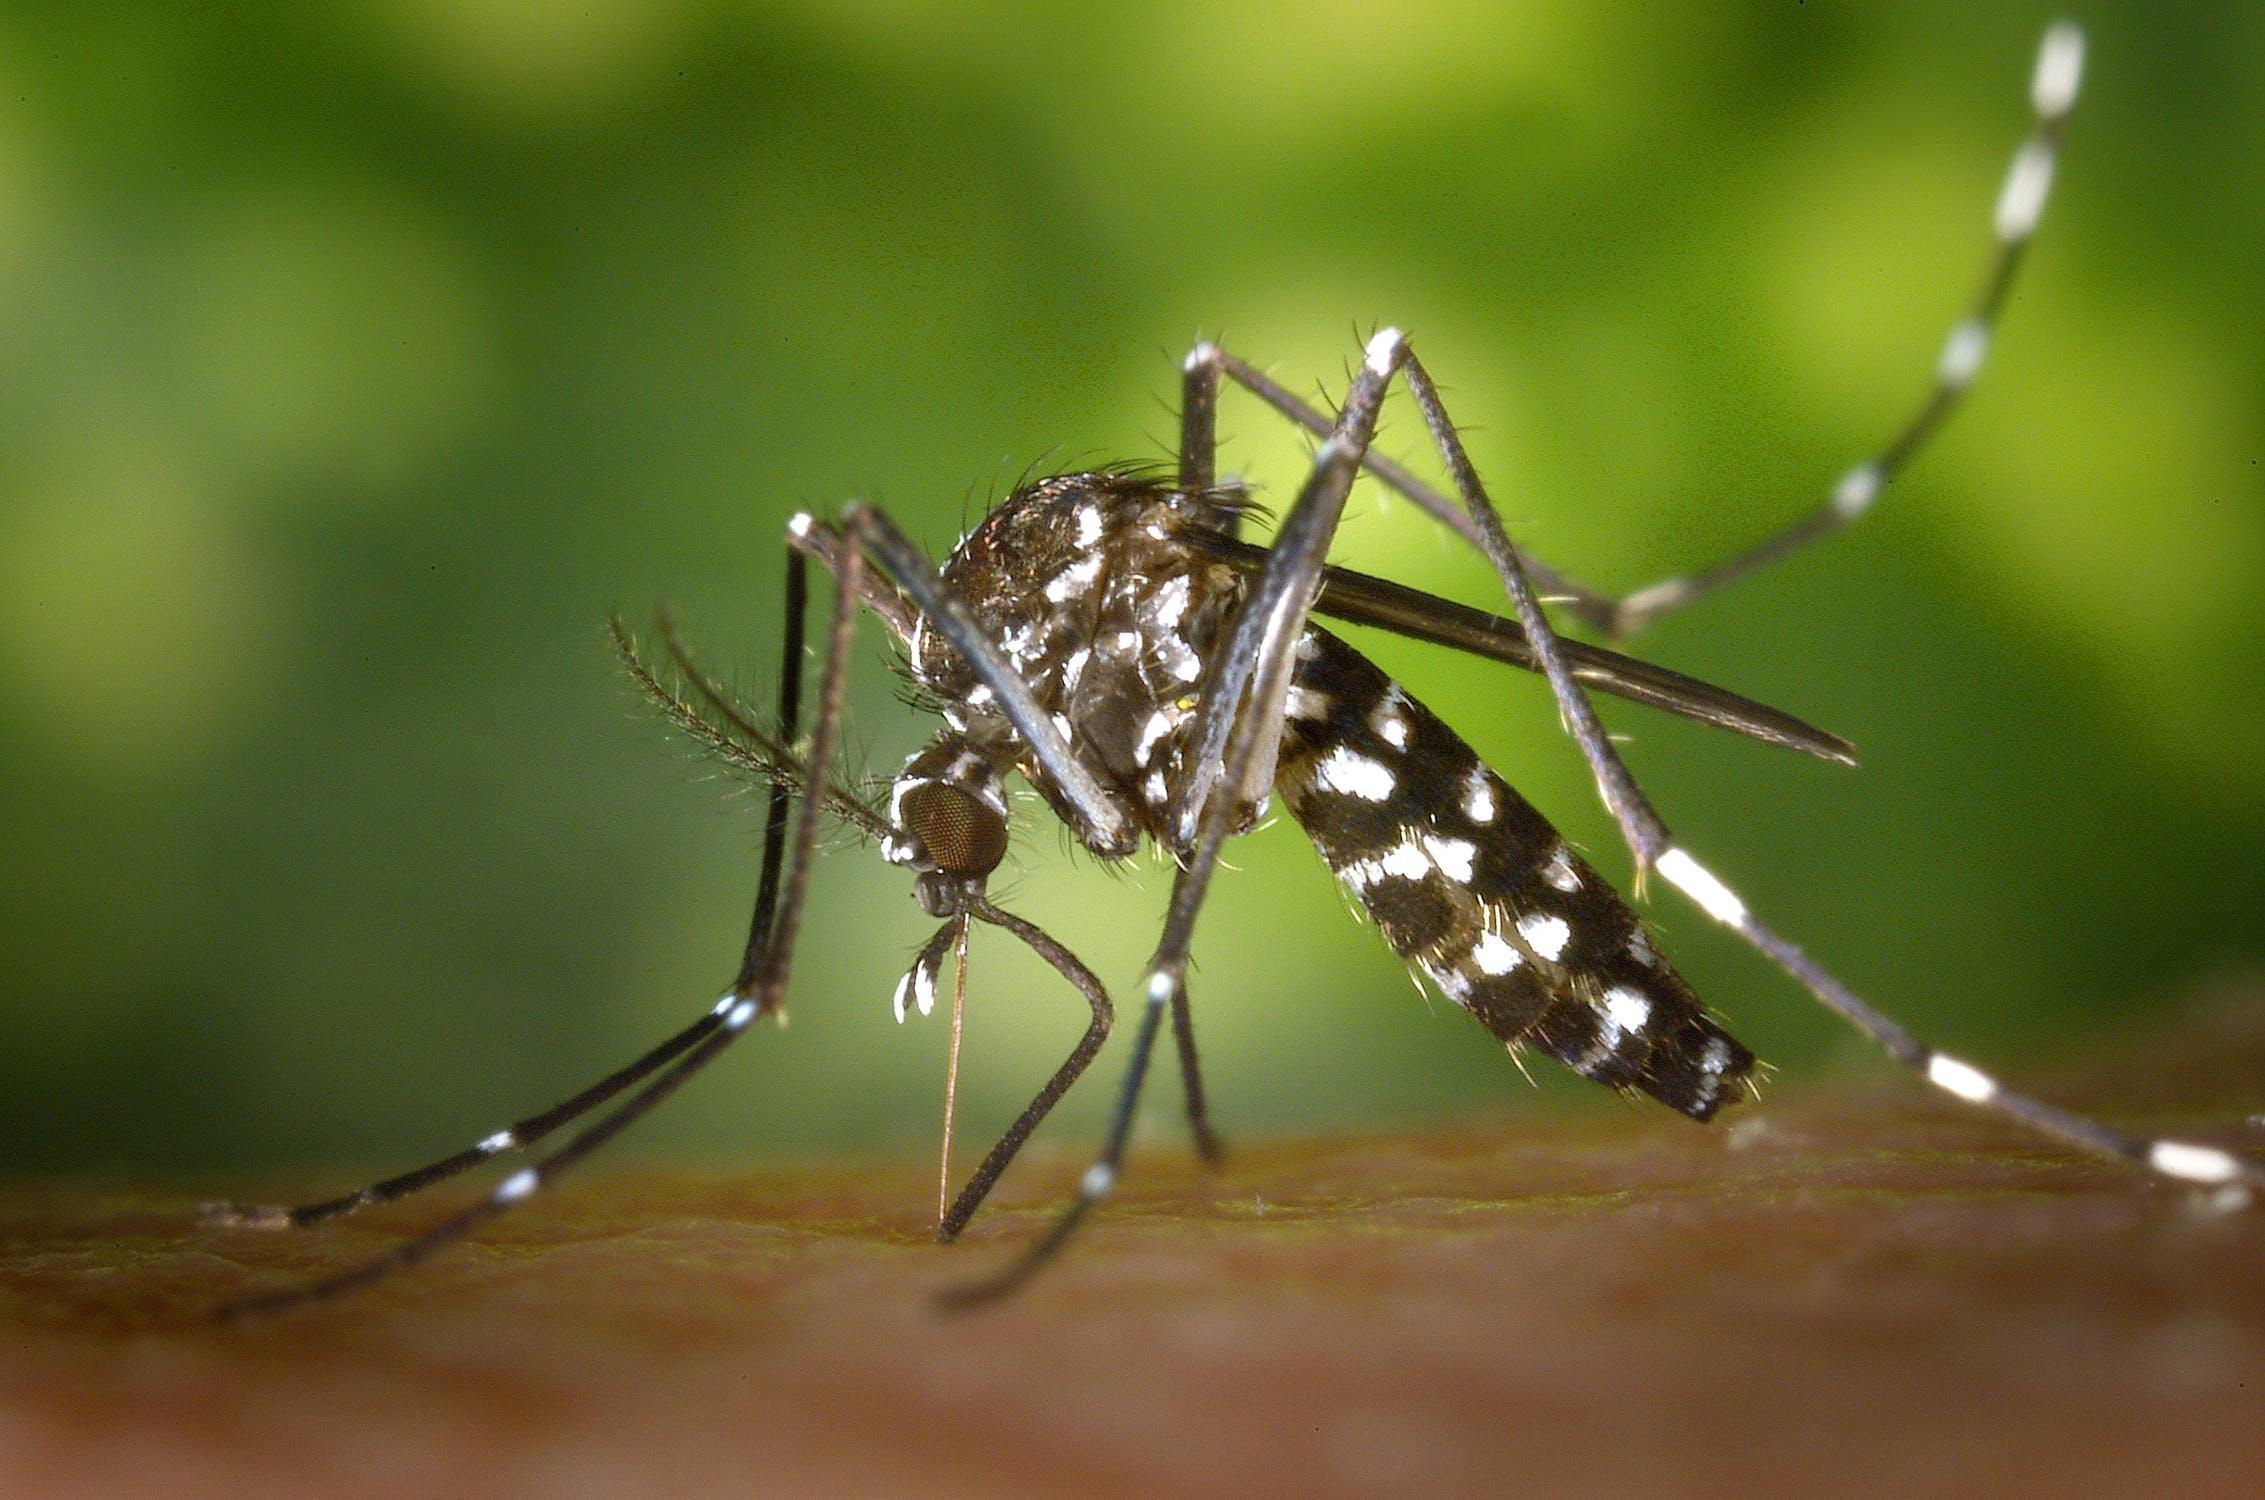 Four people die from mosquito-borne West Nile virus in Romania